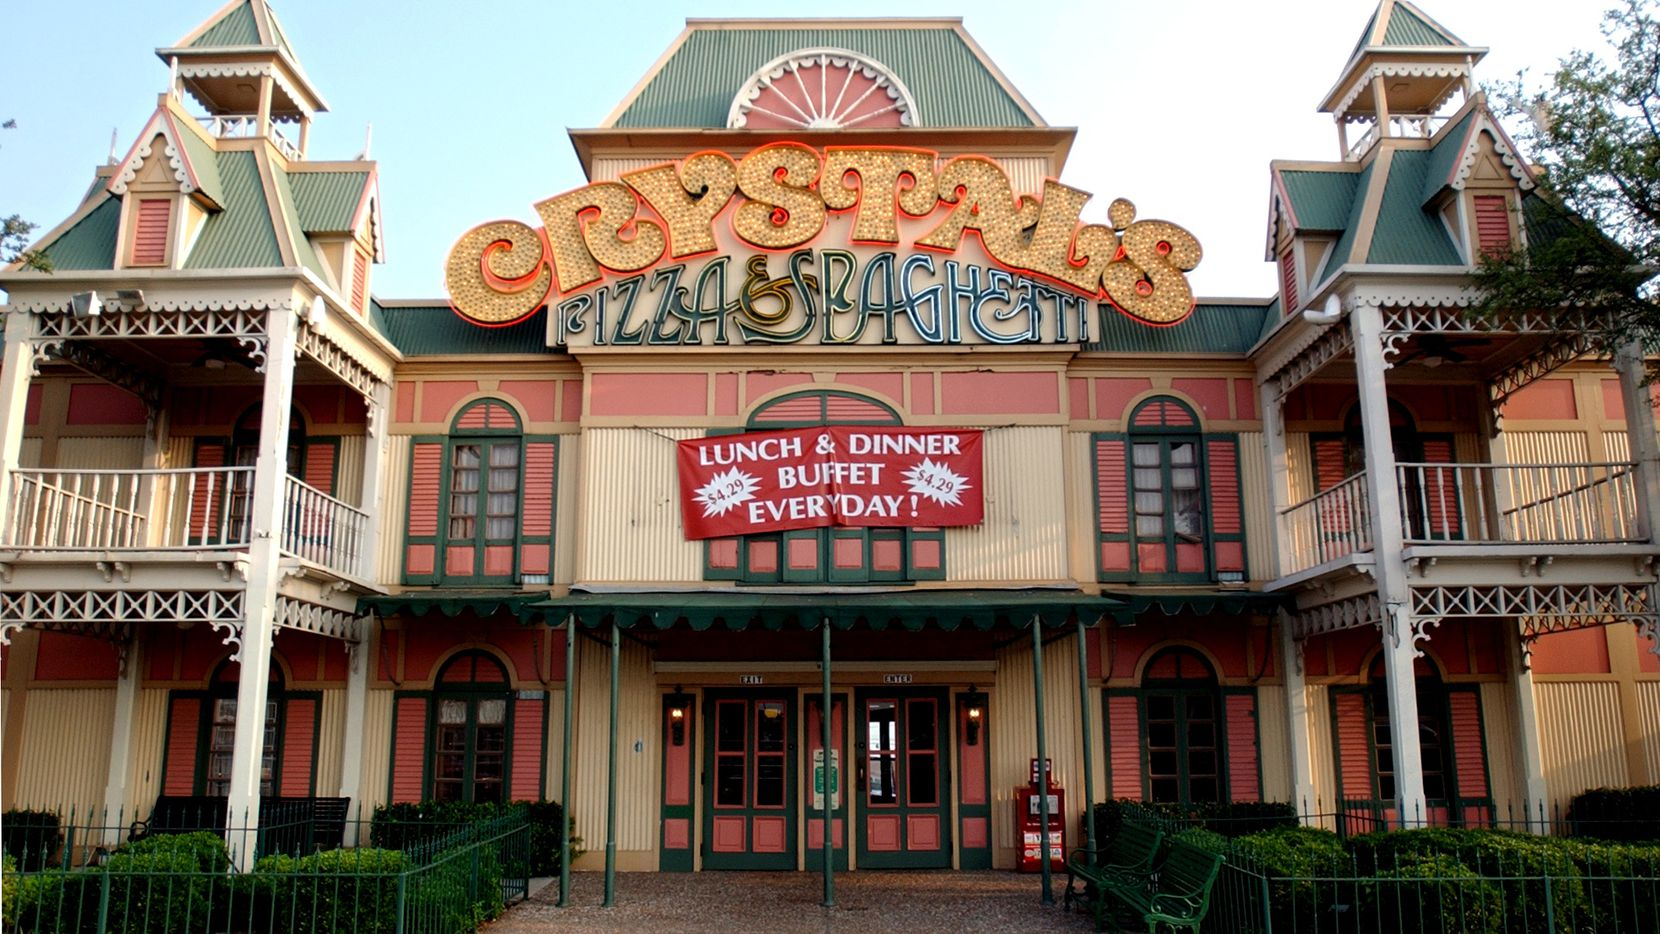 The last remaining Crystal's, in Irving, closed in February 2013